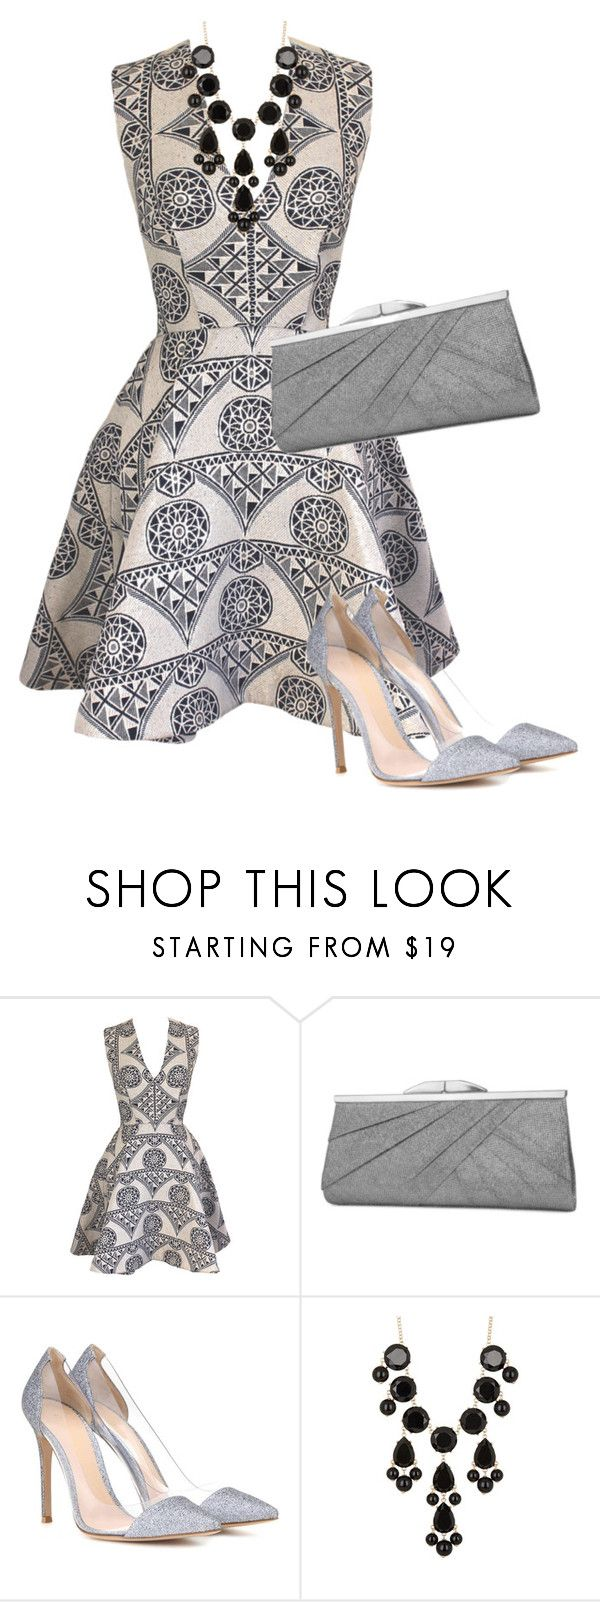 """""""Late Night"""" by toots2271 ❤ liked on Polyvore featuring Joana Almagro, Jessica McClintock, Gianvito Rossi and Natasha Accessories"""